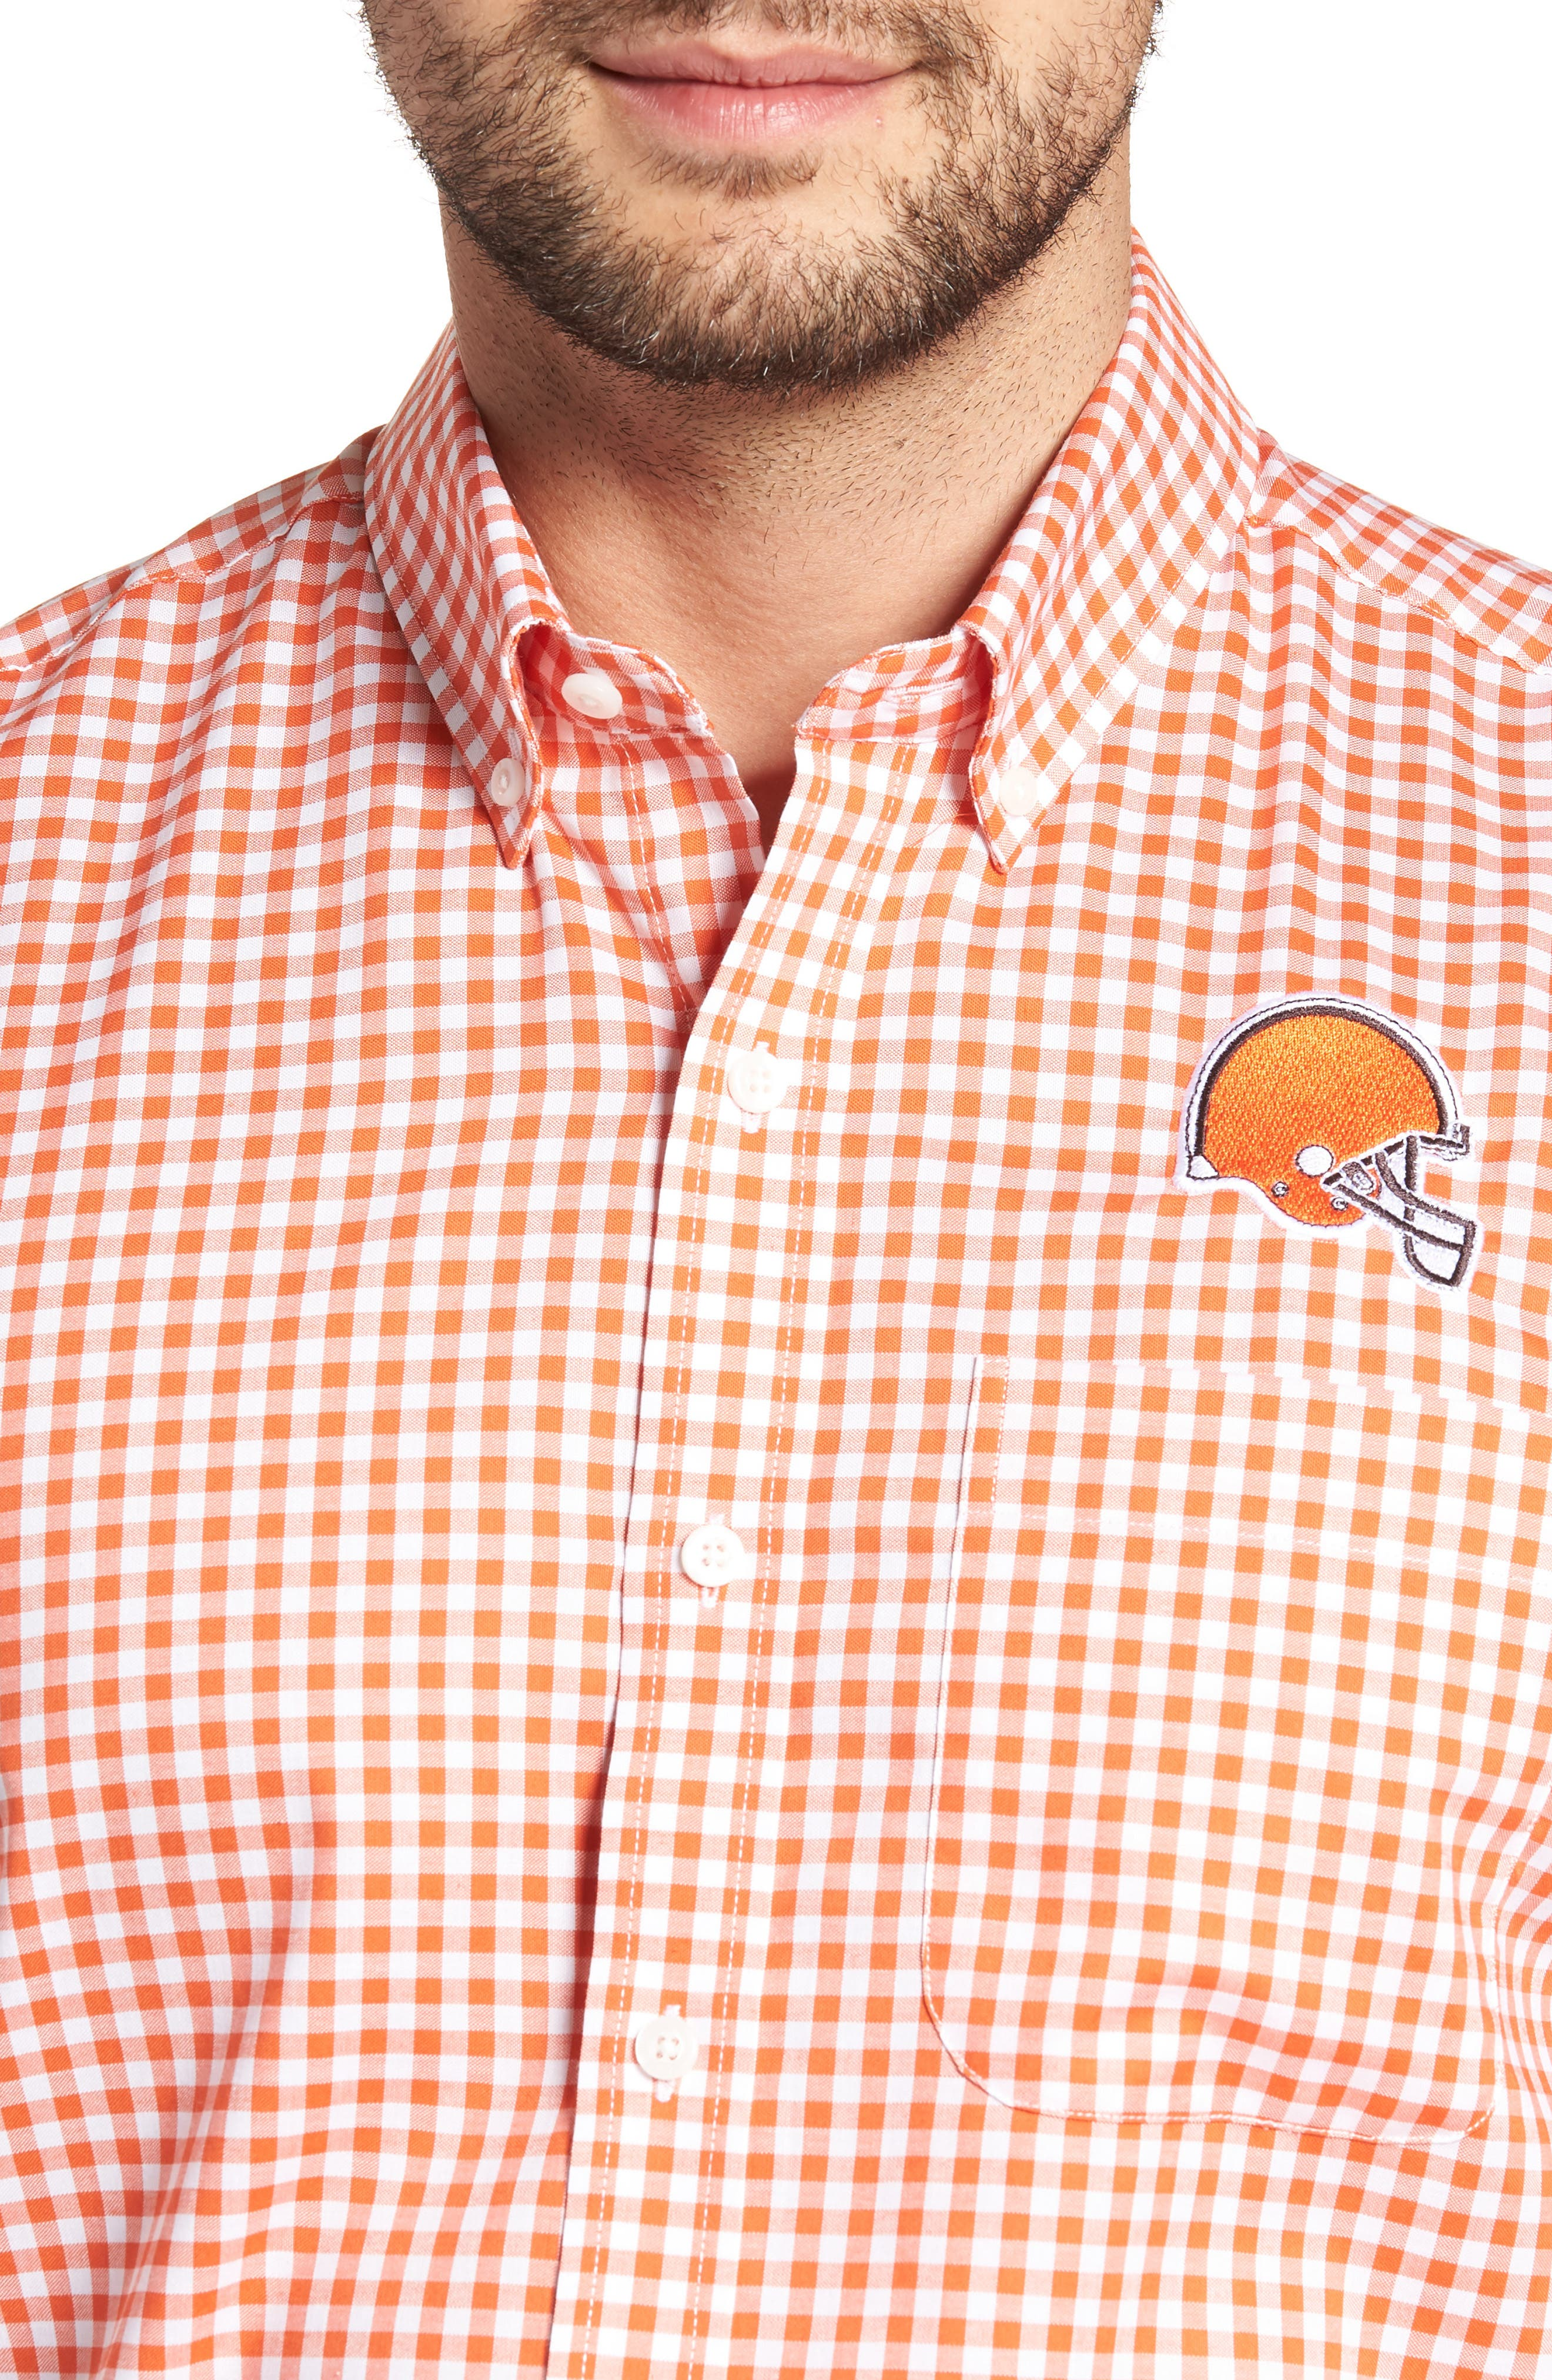 League Cleveland Browns Regular Fit Shirt,                             Alternate thumbnail 4, color,                             COLLEGE ORANGE